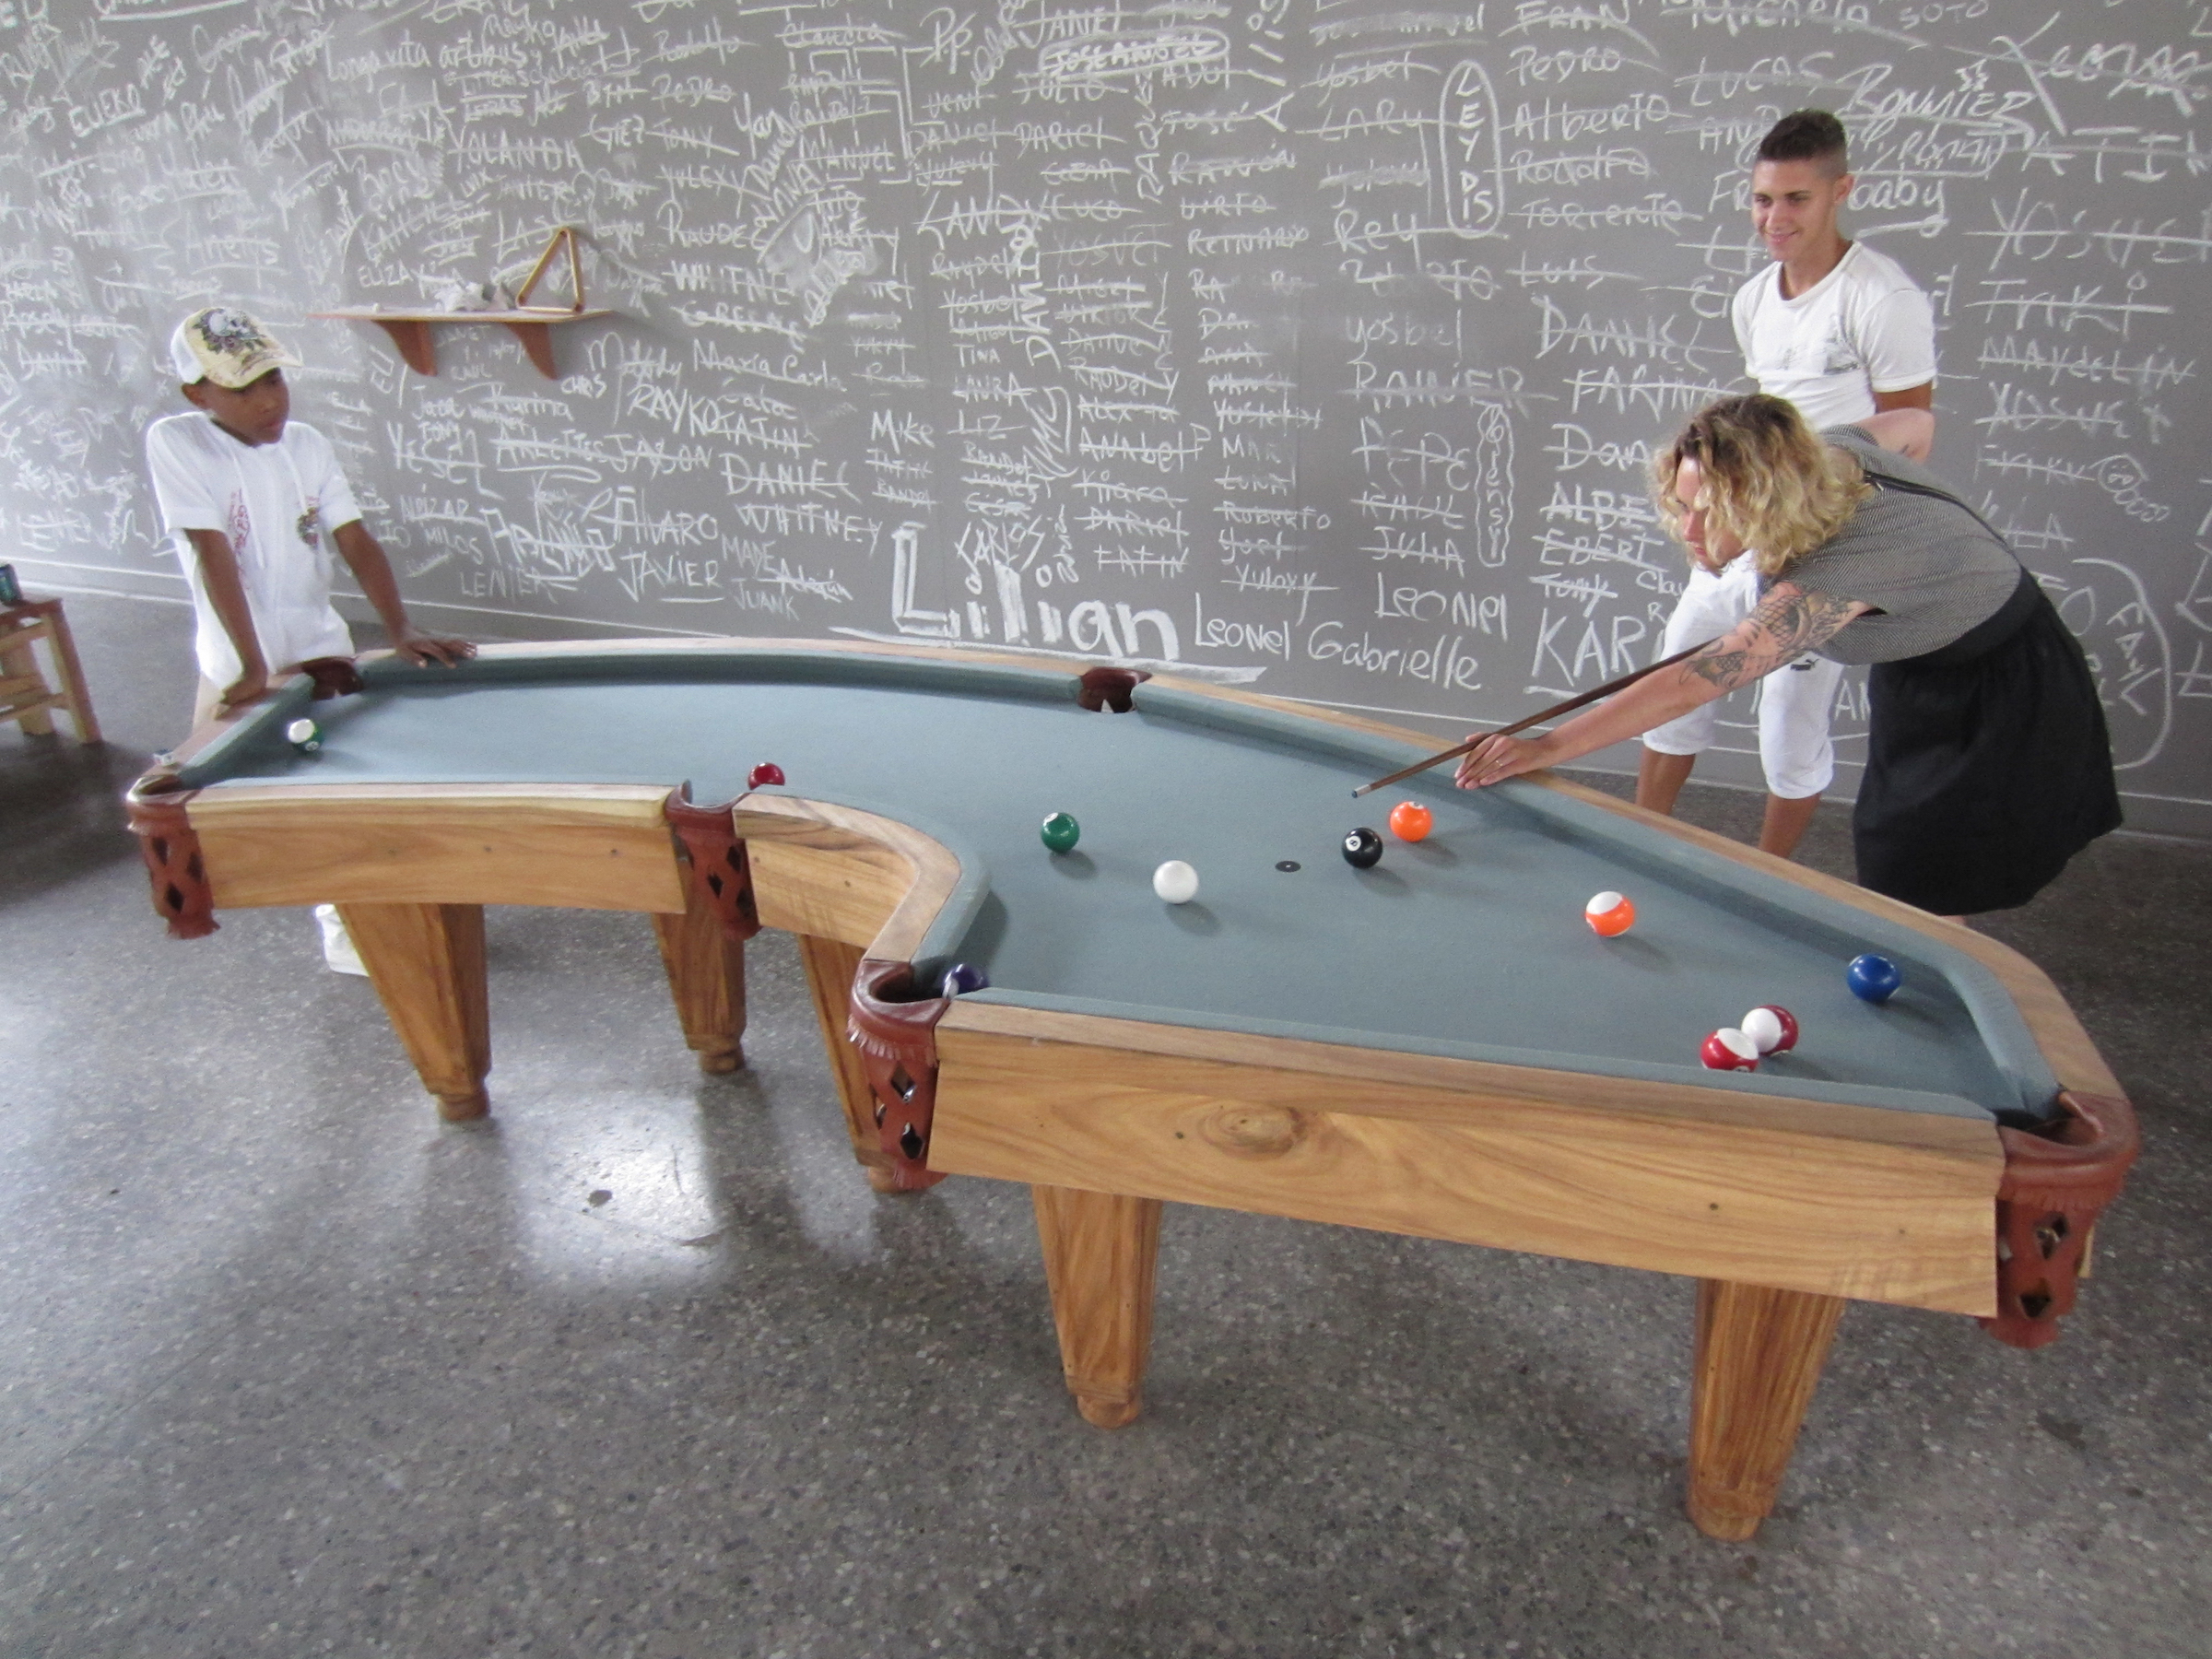 Yes this Cuba shaped pool table is art